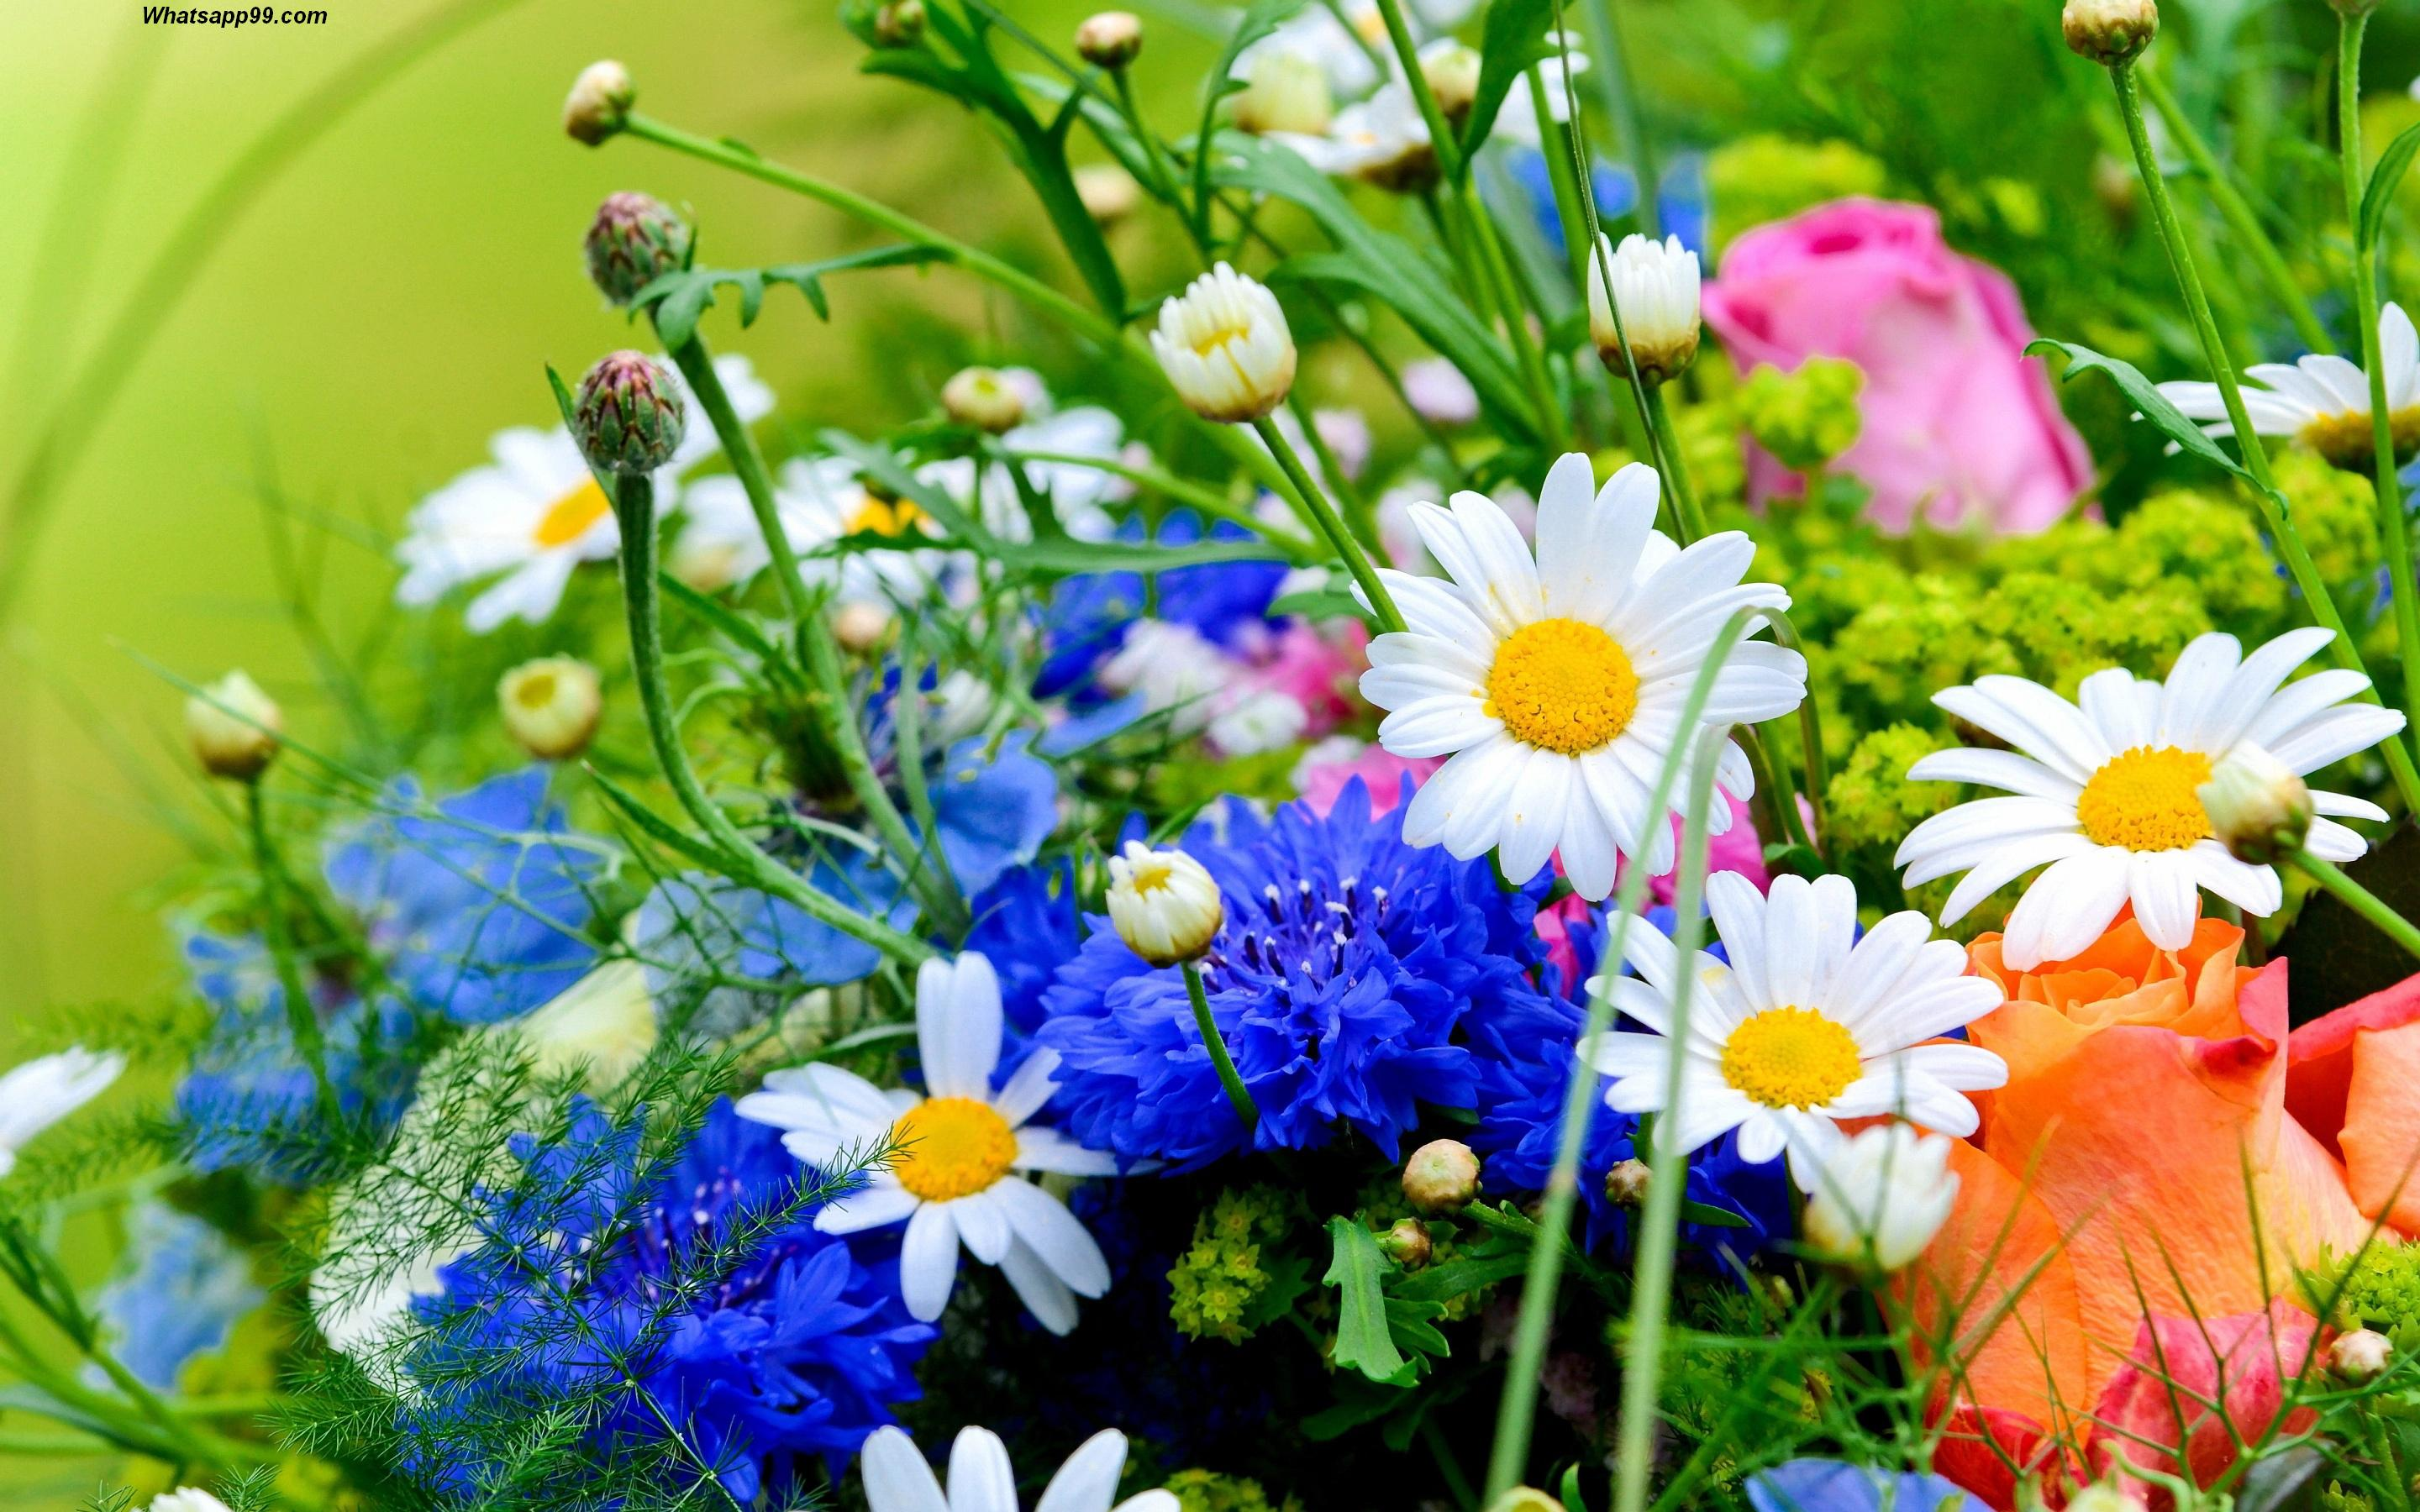 Beautiful Flower HD Wallpaper For Whats app DP